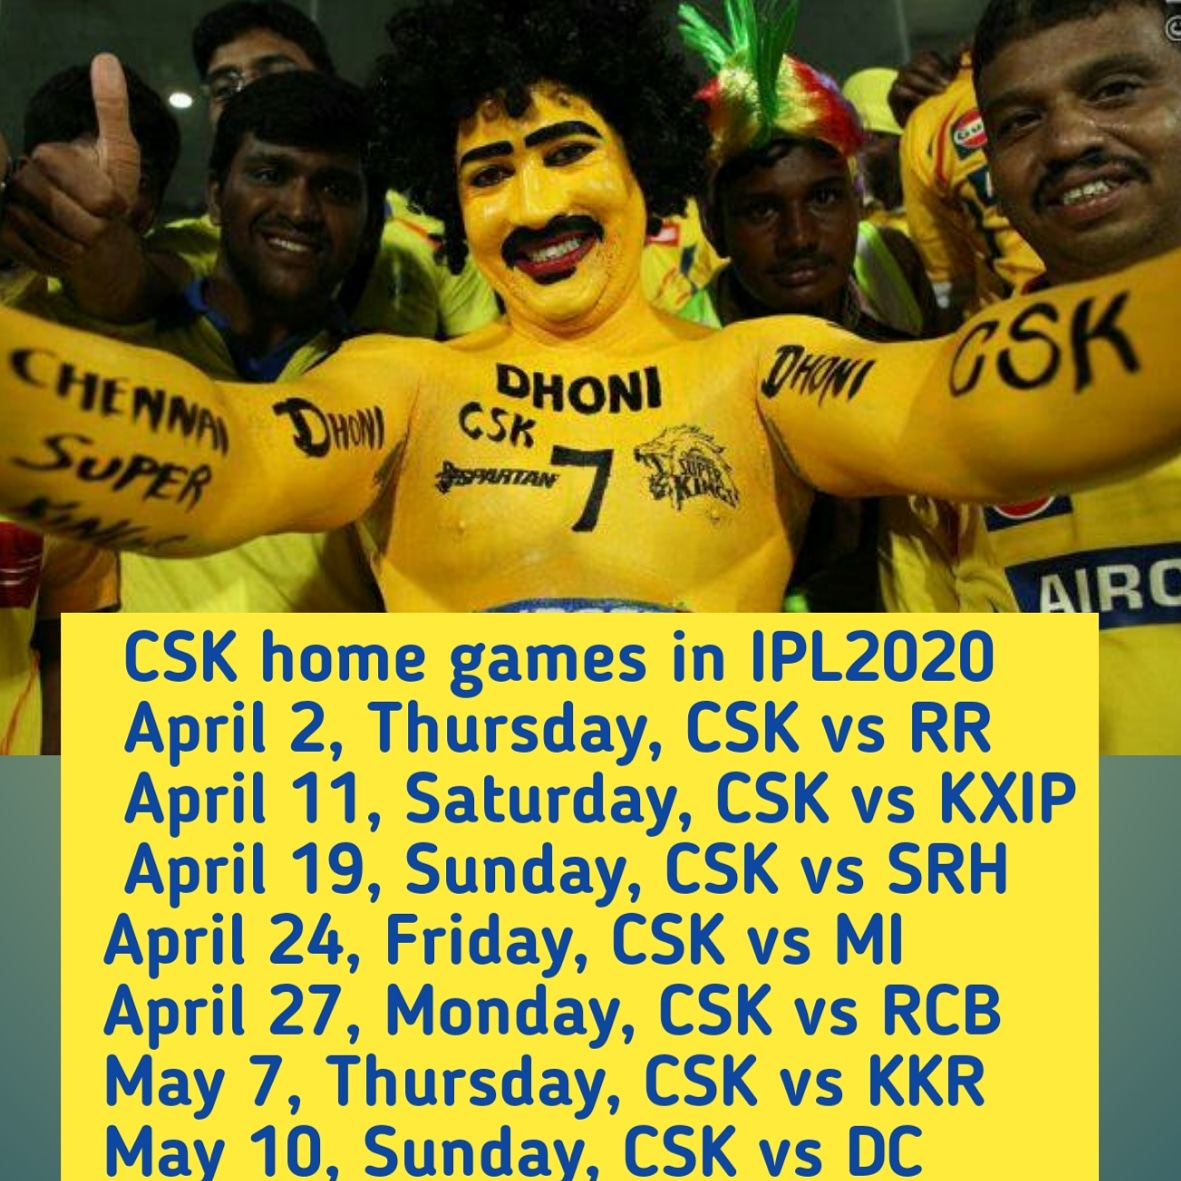 Excited for this year IPL at Anbu-Den 🏟 @ChennaiIPL #Dhoni #Csk #Yellove